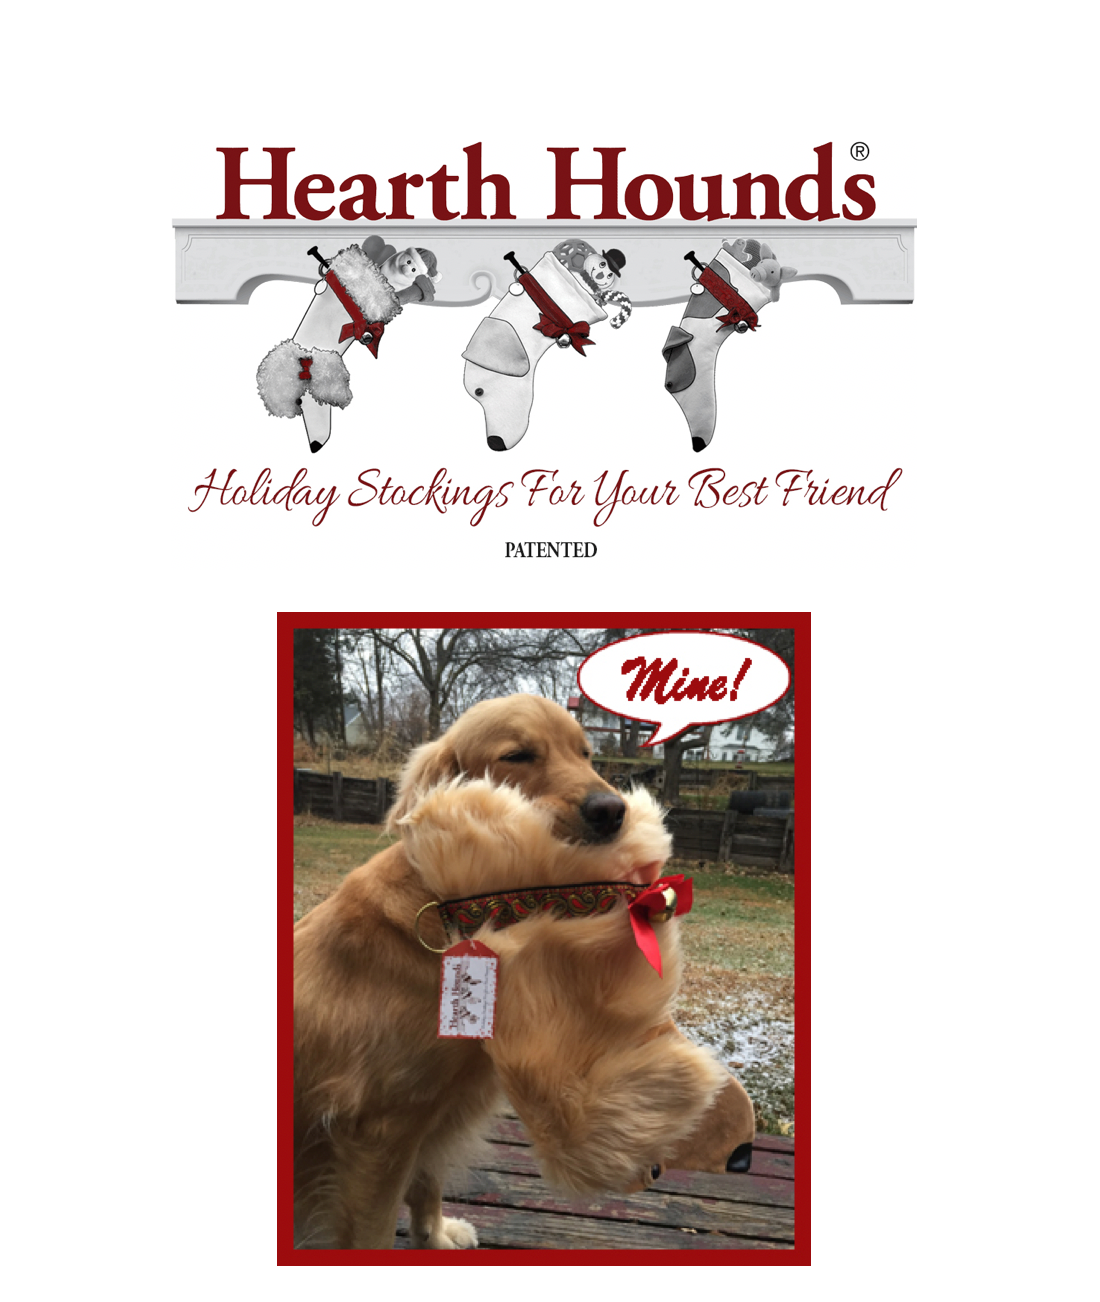 Hearth Hounds, LLC